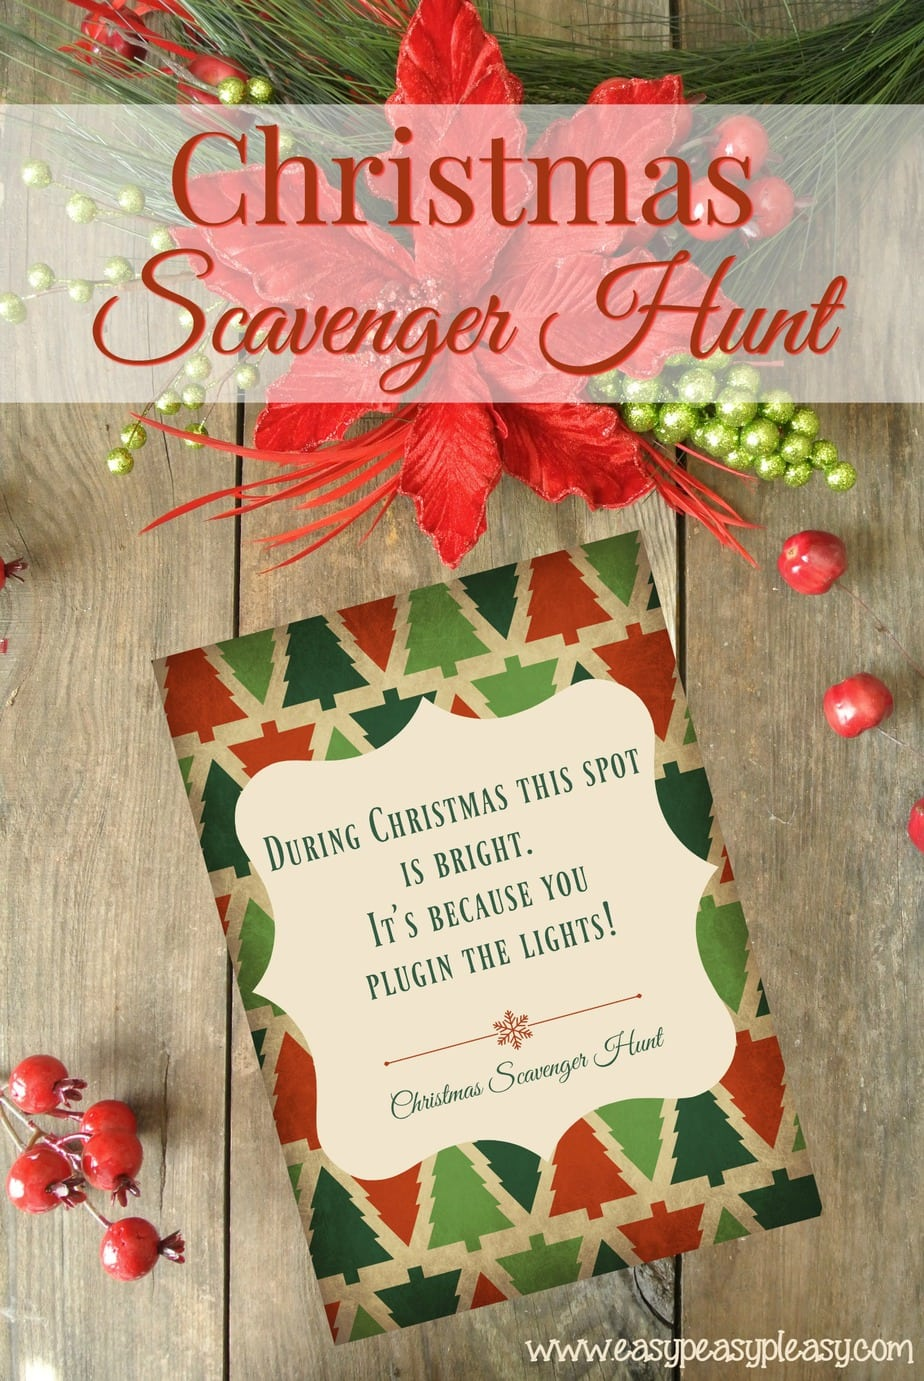 Christmas Scavenger Hunt with Free Printable Clues.